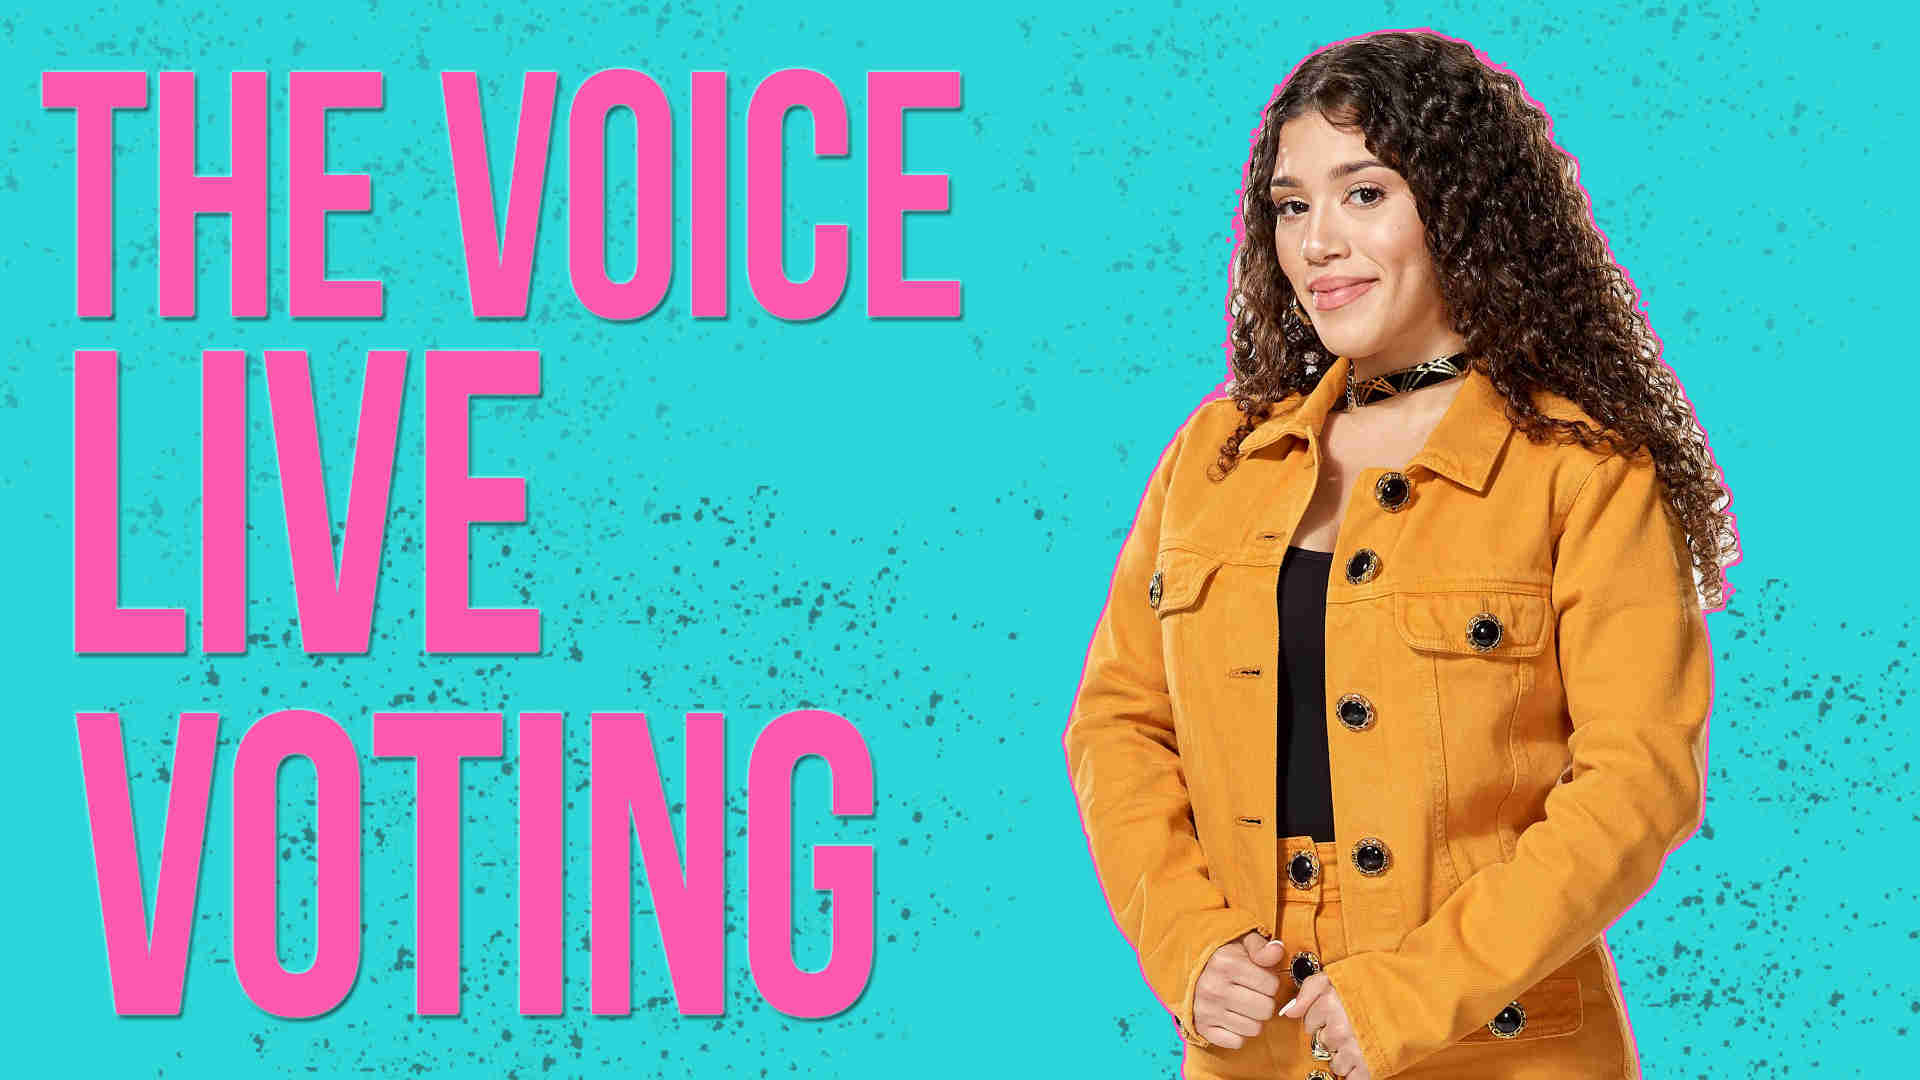 Vote Mandi Castillo The Voice USA 2020 Top 17 Playoffs Voting Tonight on 4 May 2020